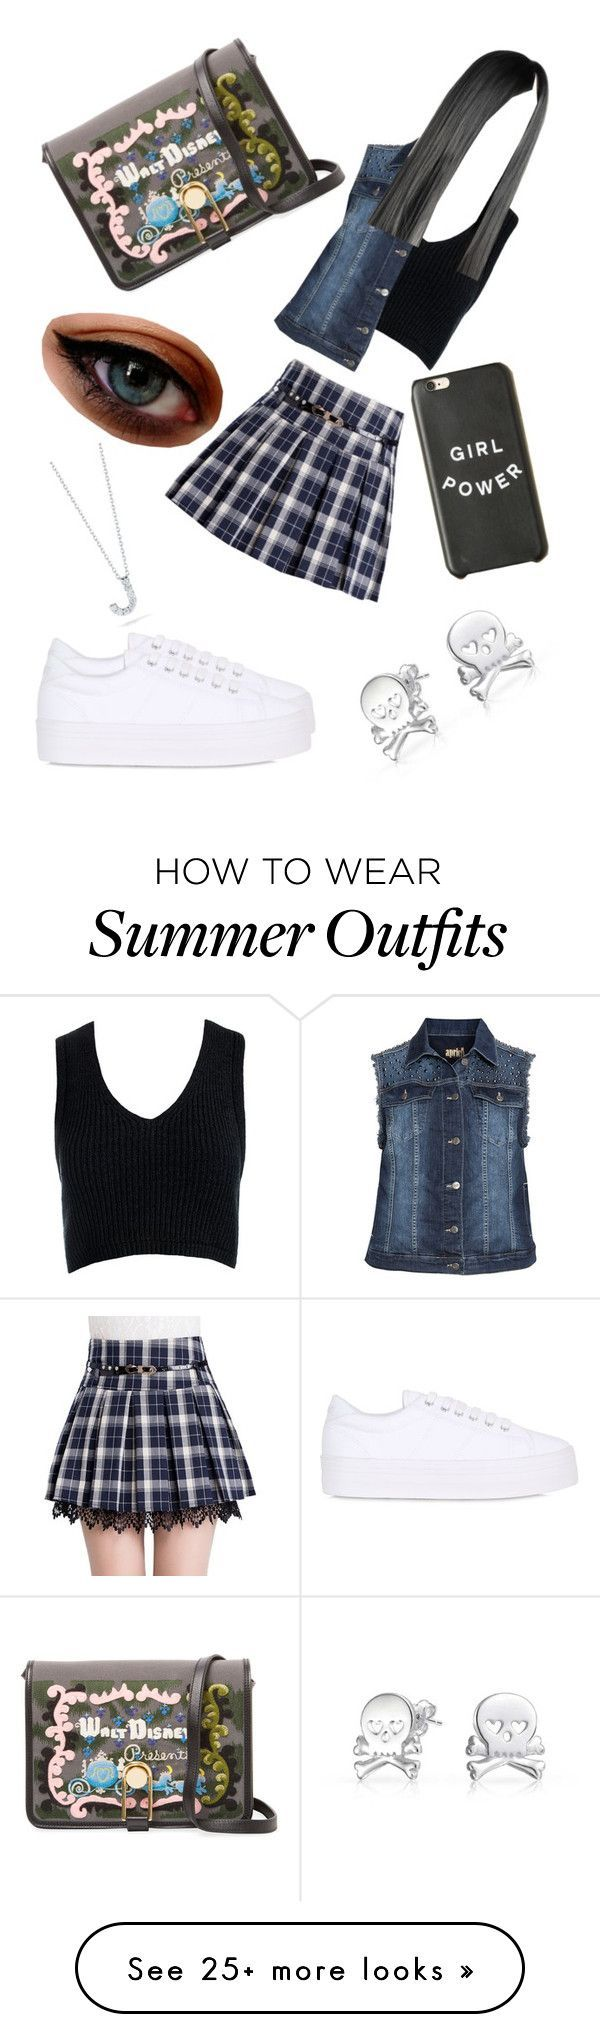 """Summer Outfits : """"Girls Day Outing Outfit"""" by cooljen13 on Polyvore featuring Sans Souc"""